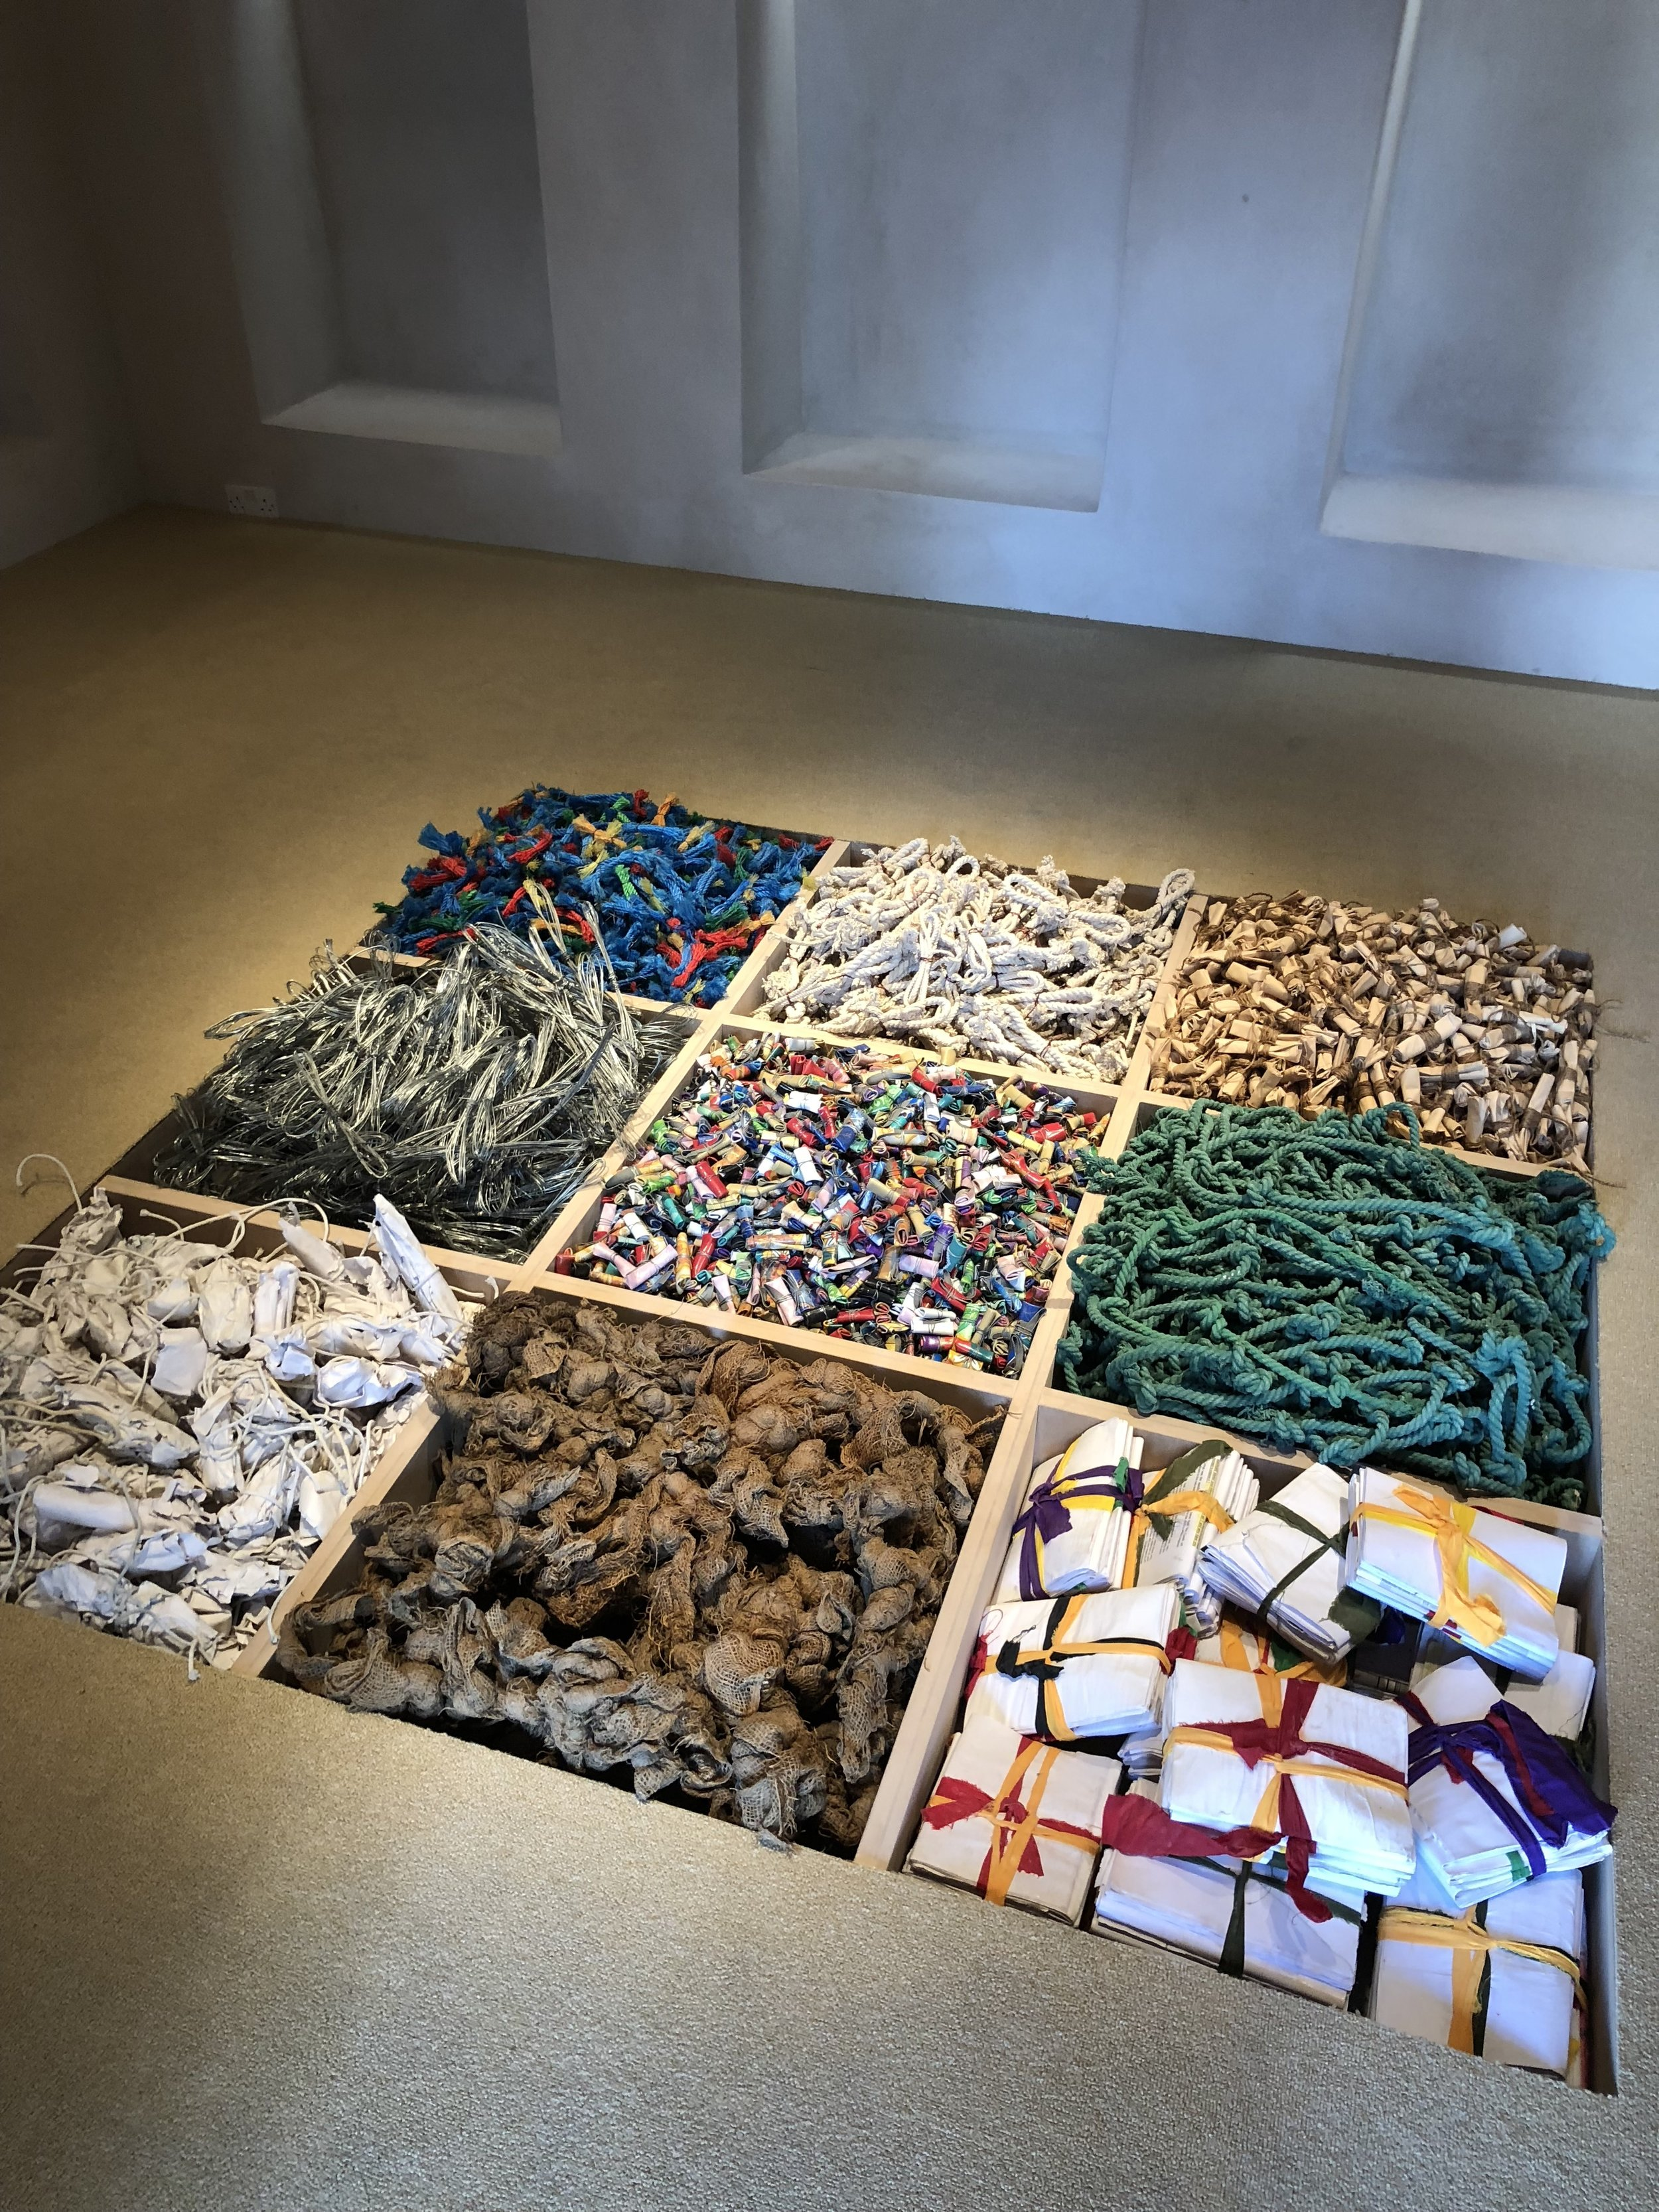 Compartmentalised items from Sharif's vast oeuvre display how he was attracted to the sheer volume of things that we fill our lives with